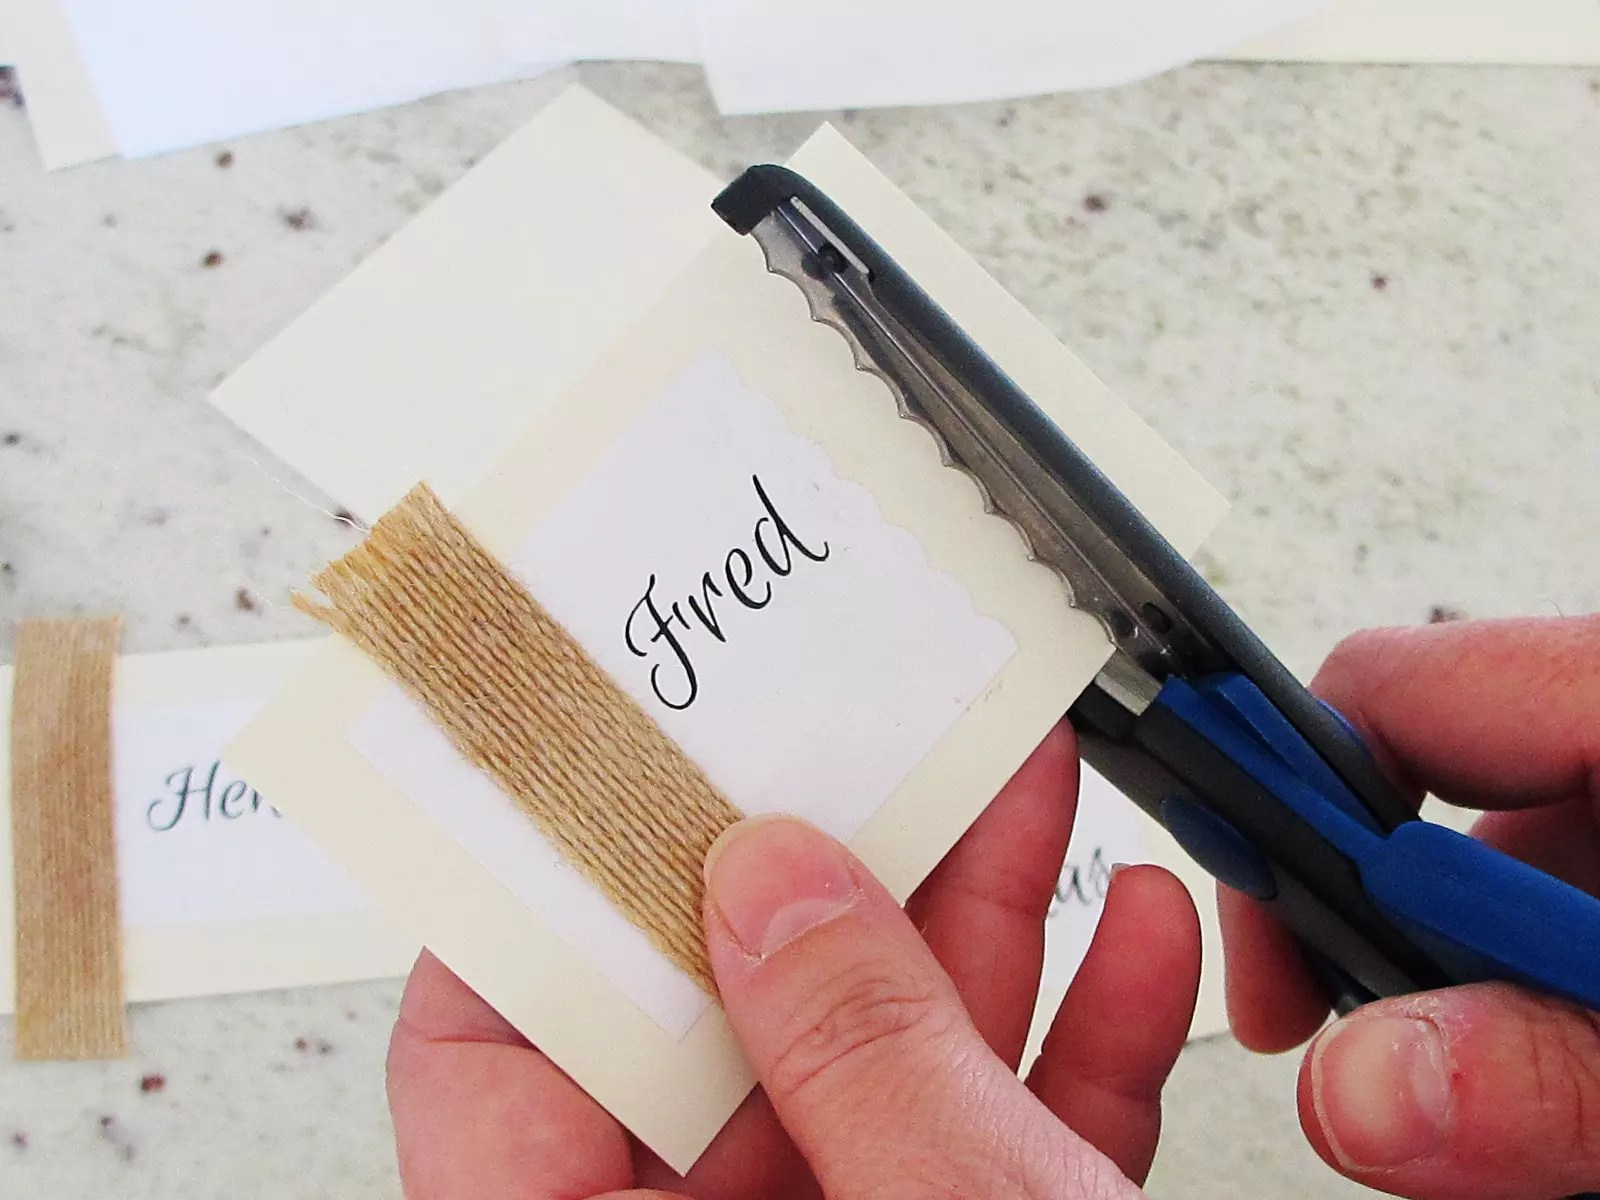 trimming edge of a place card with decorative scissors